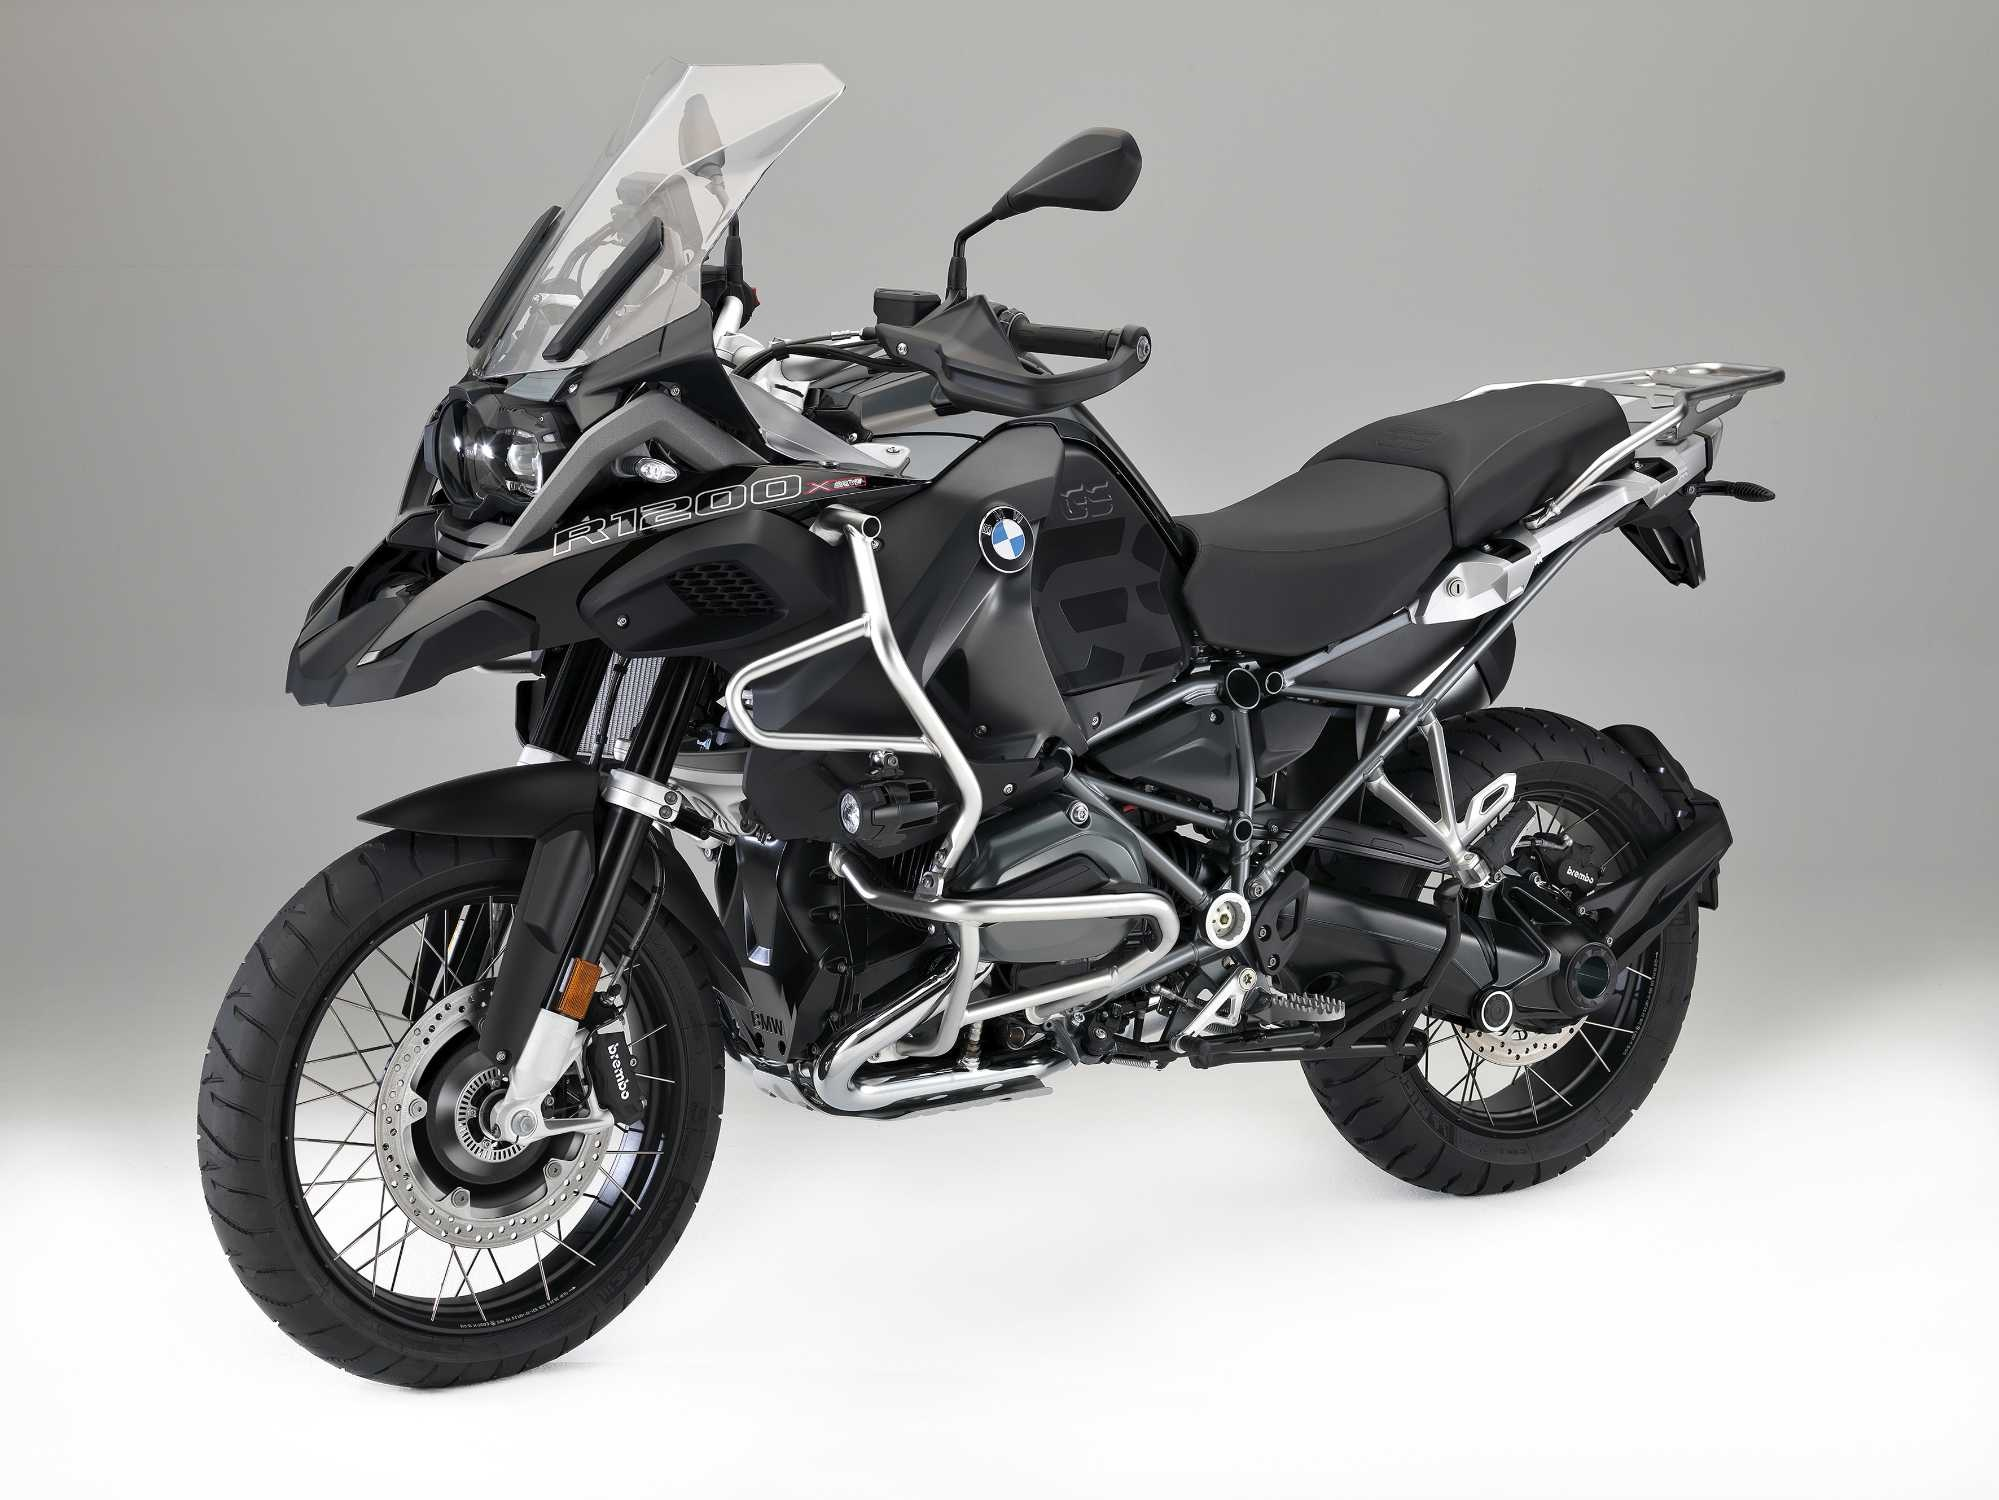 BMW R 1200 GS Side View Official Promotional Image